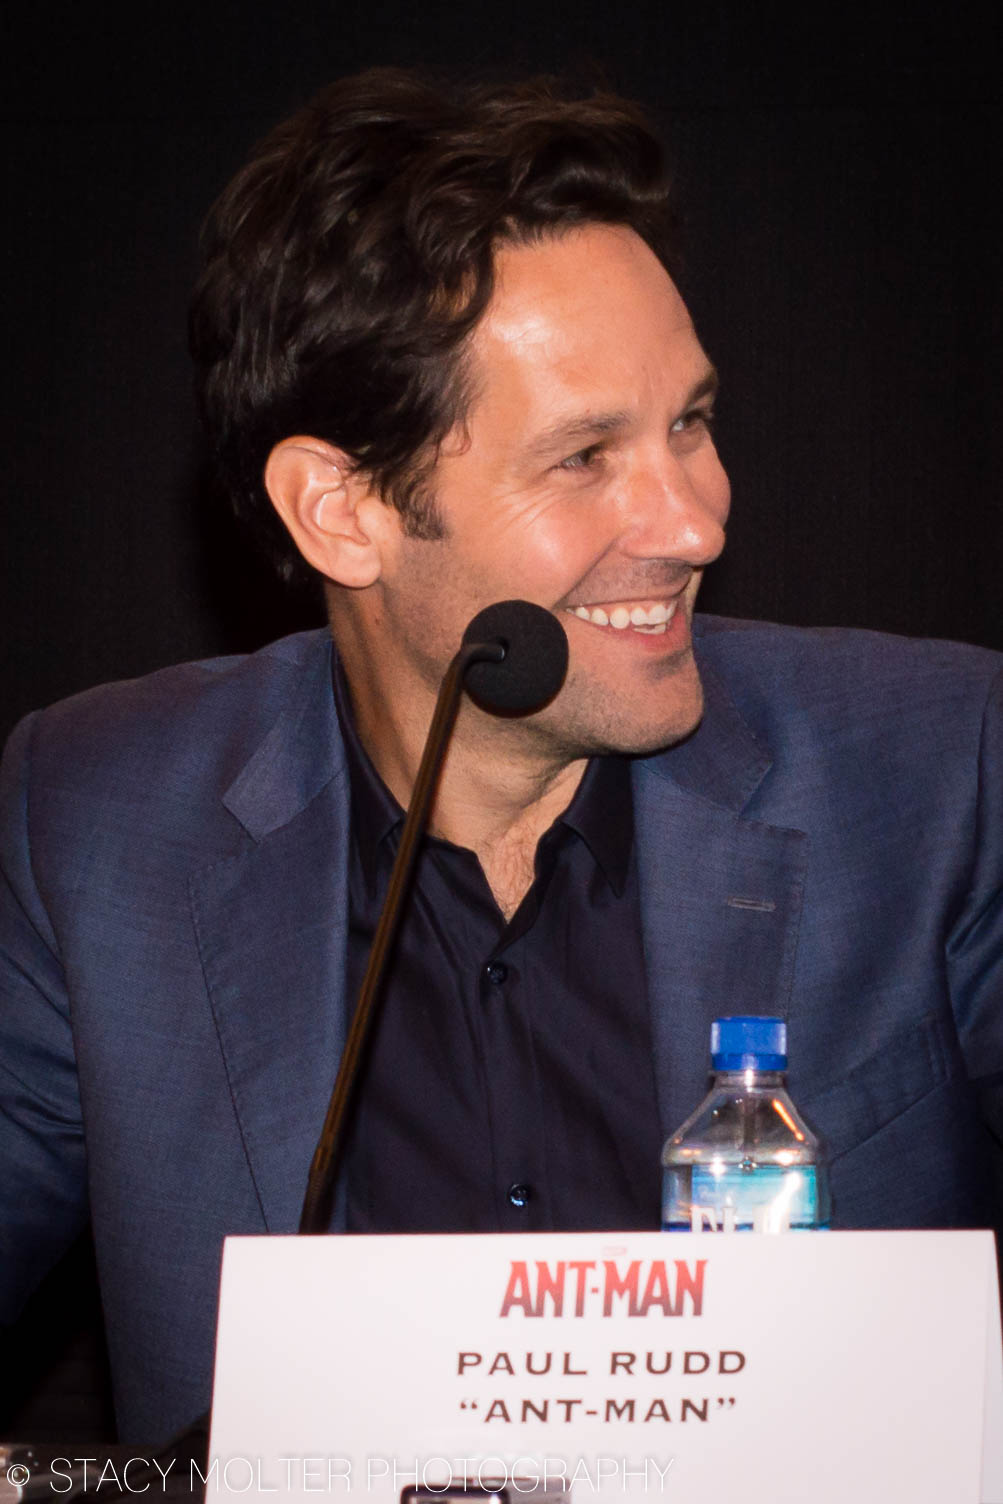 Paul Rudd - Ant-Man Press Conference